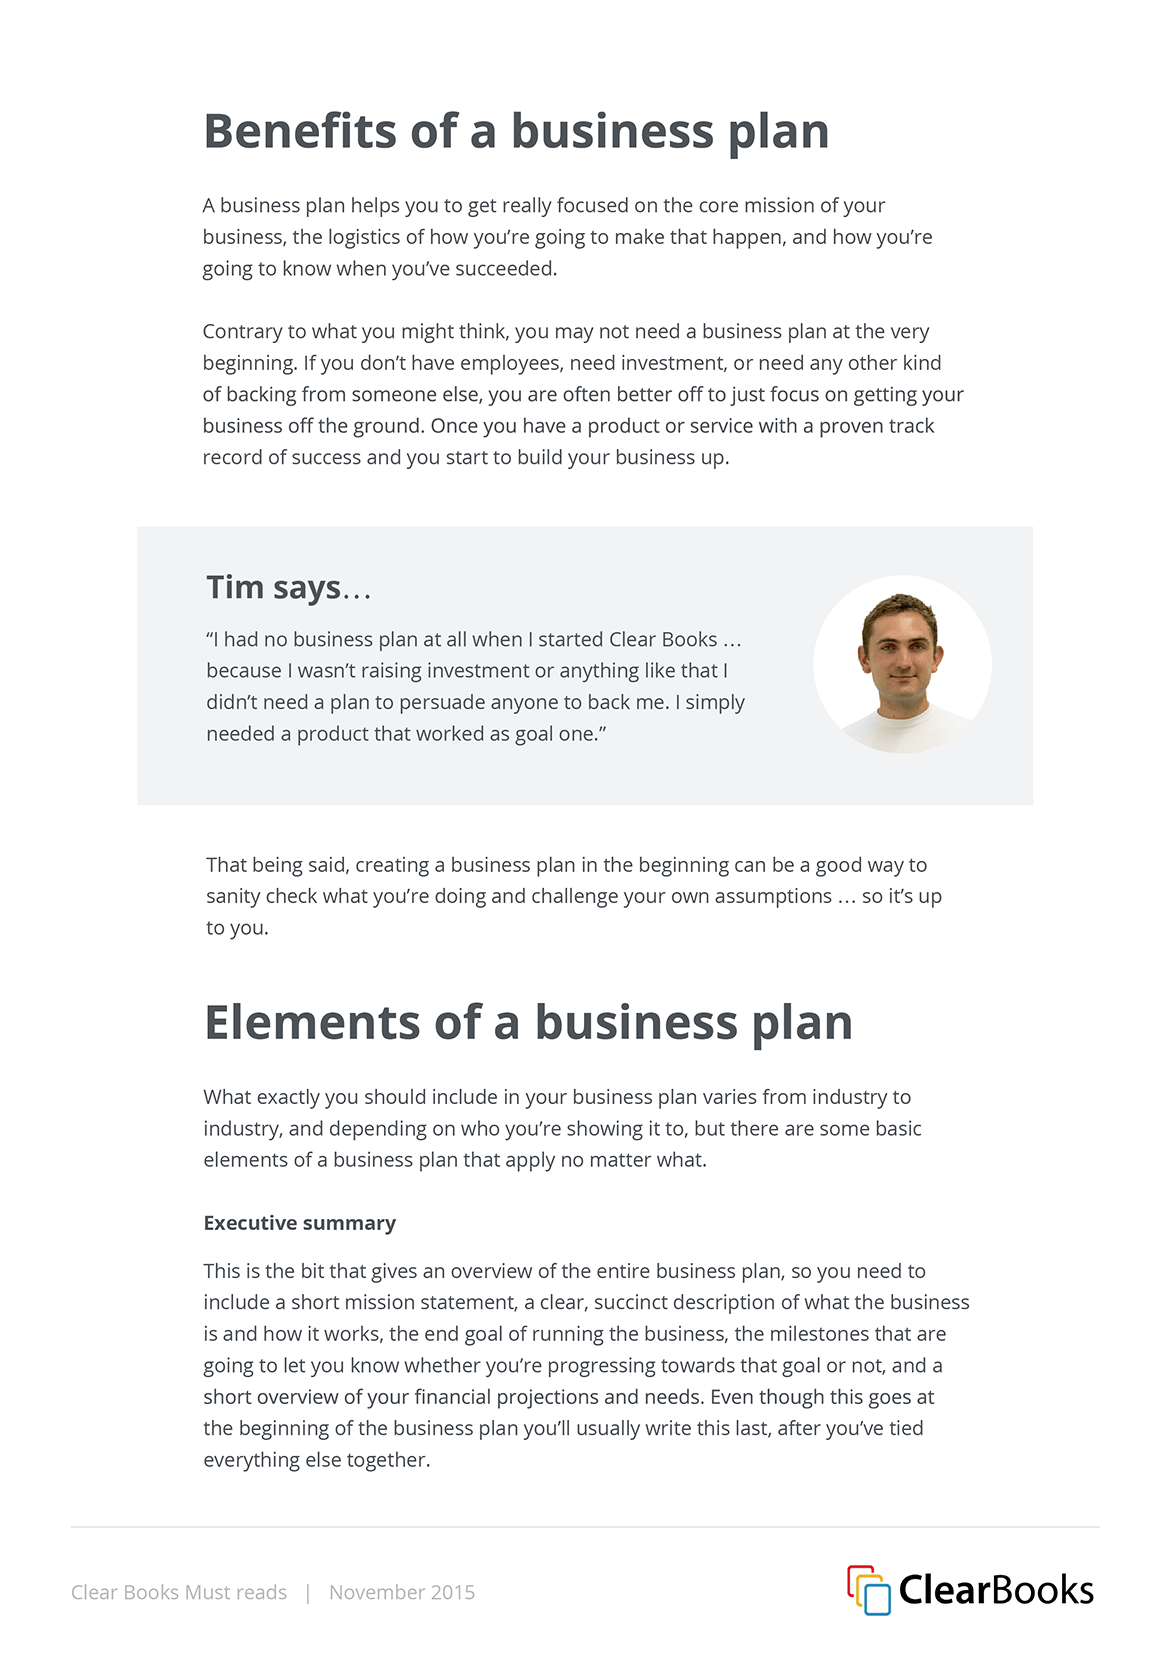 Clear Books white papers and infographics